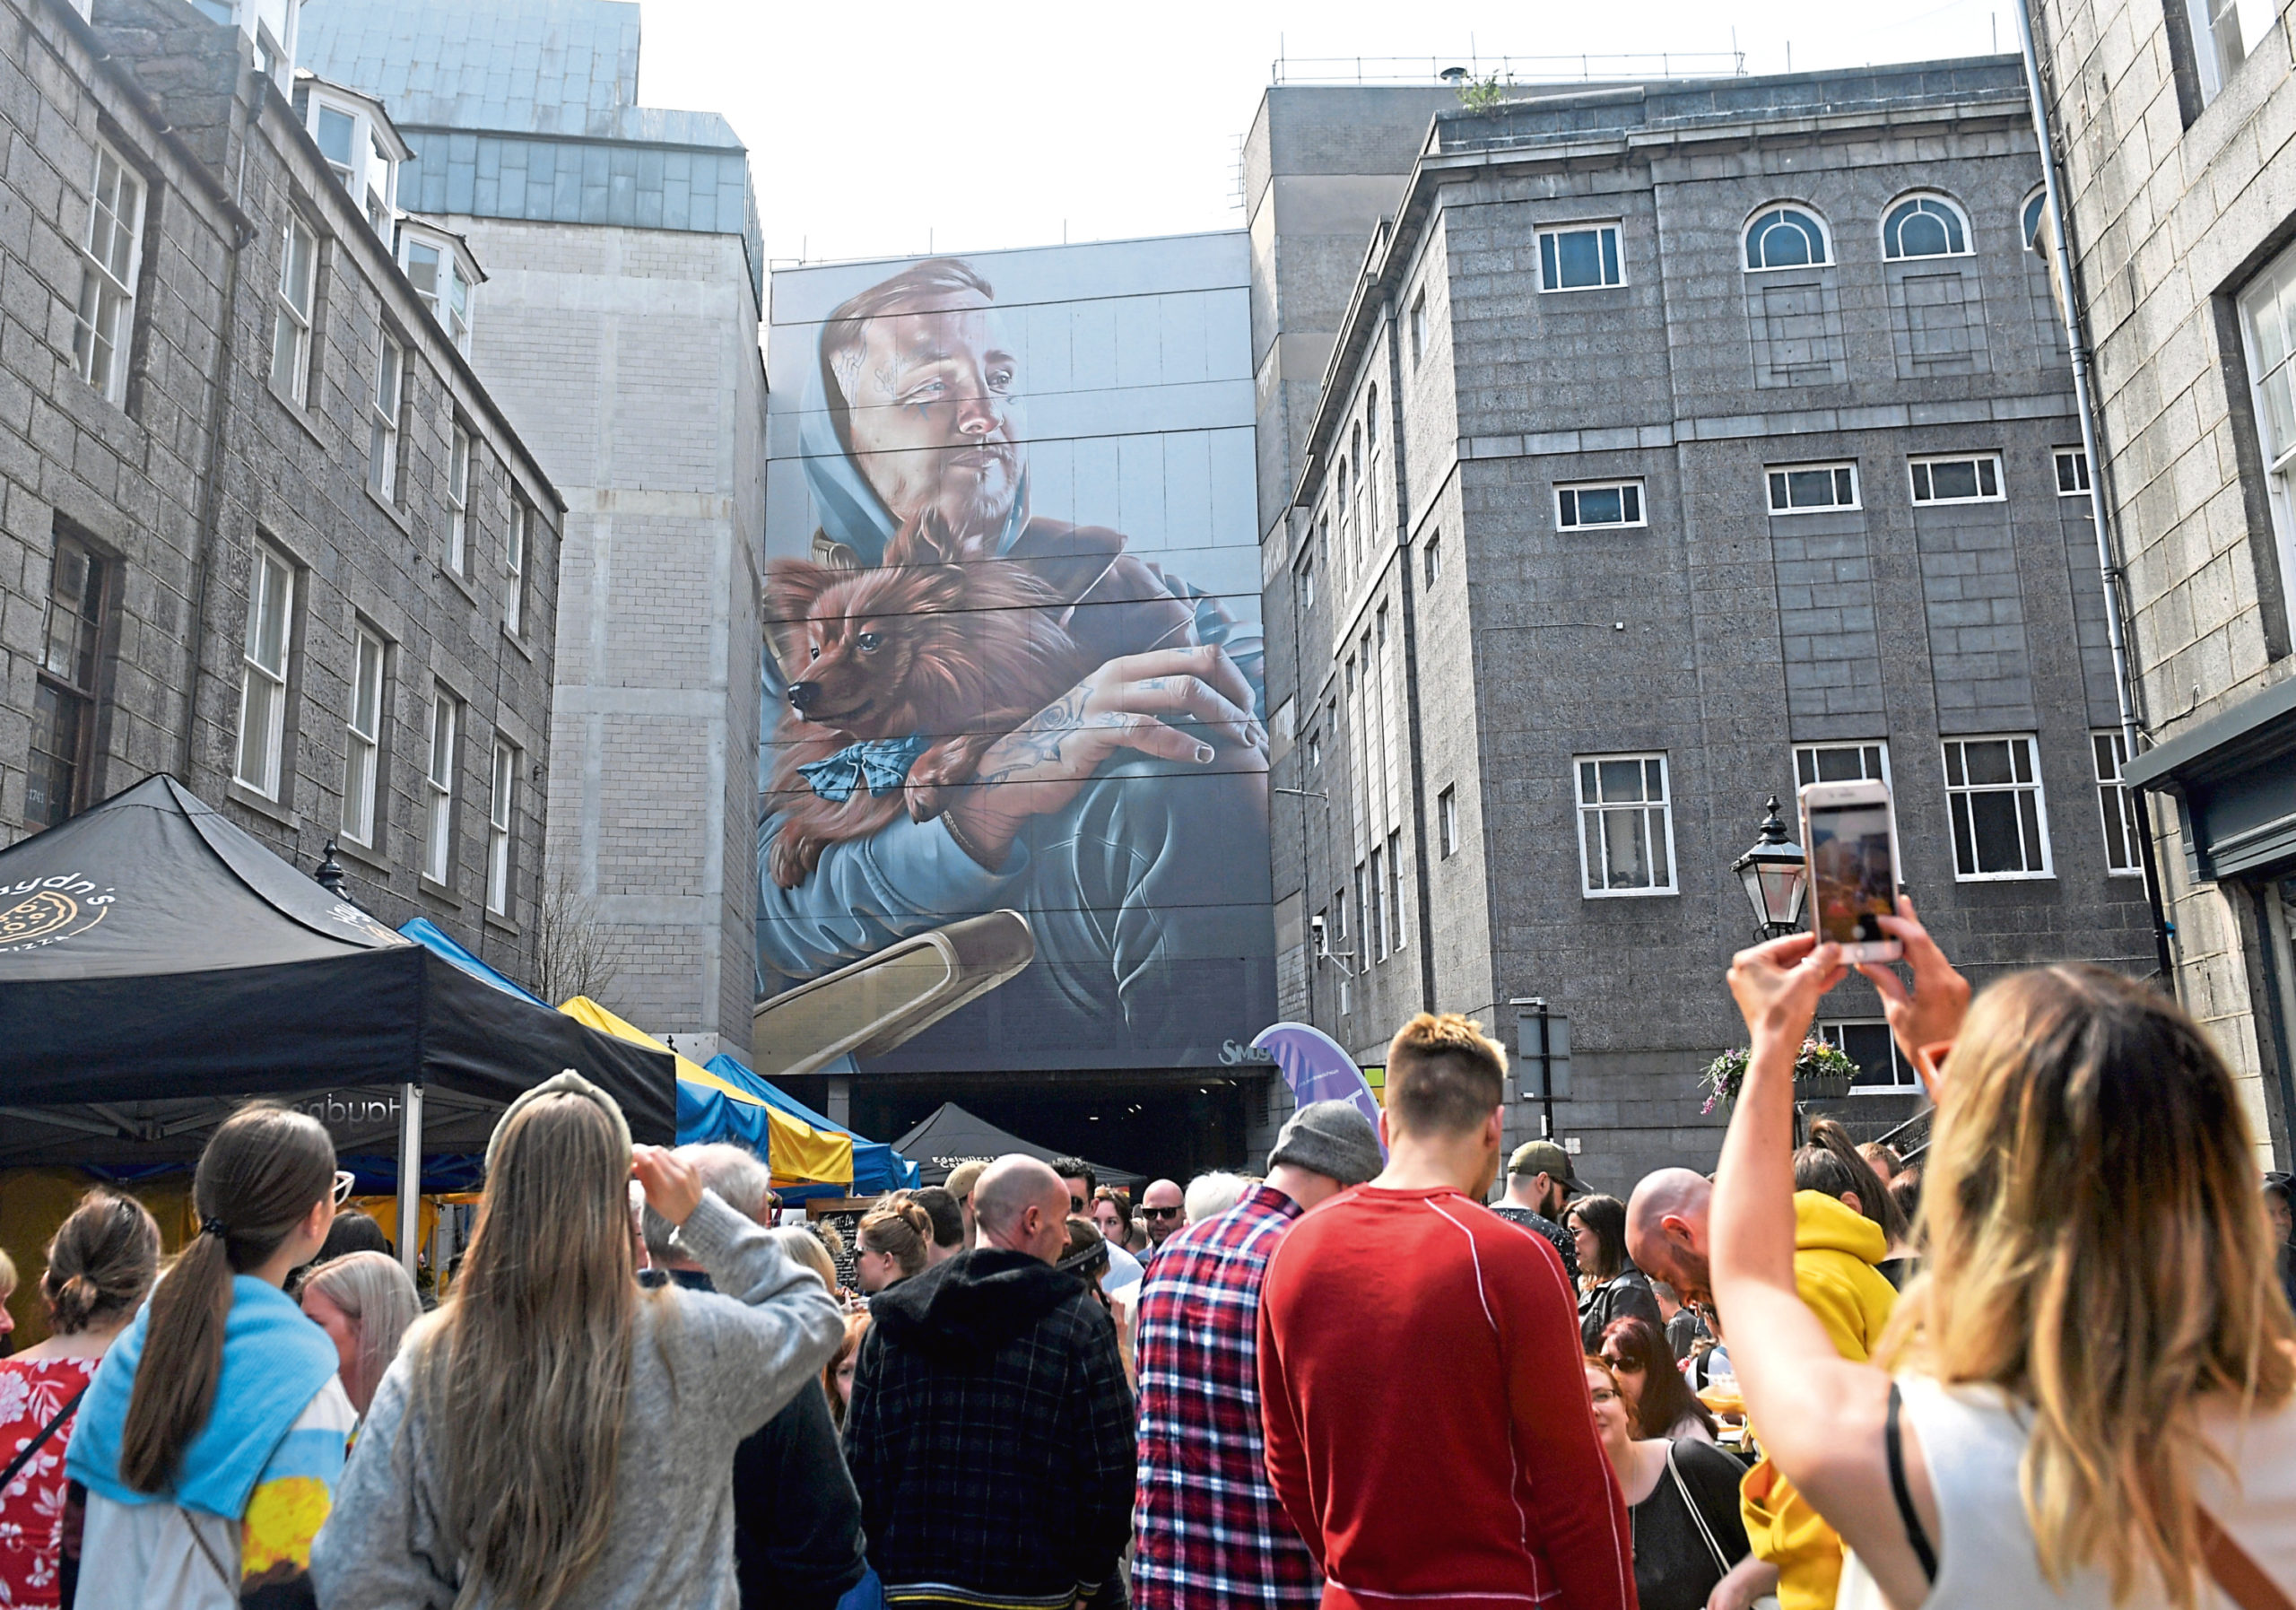 The street festival attracts artists from all over the world to Aberdeen